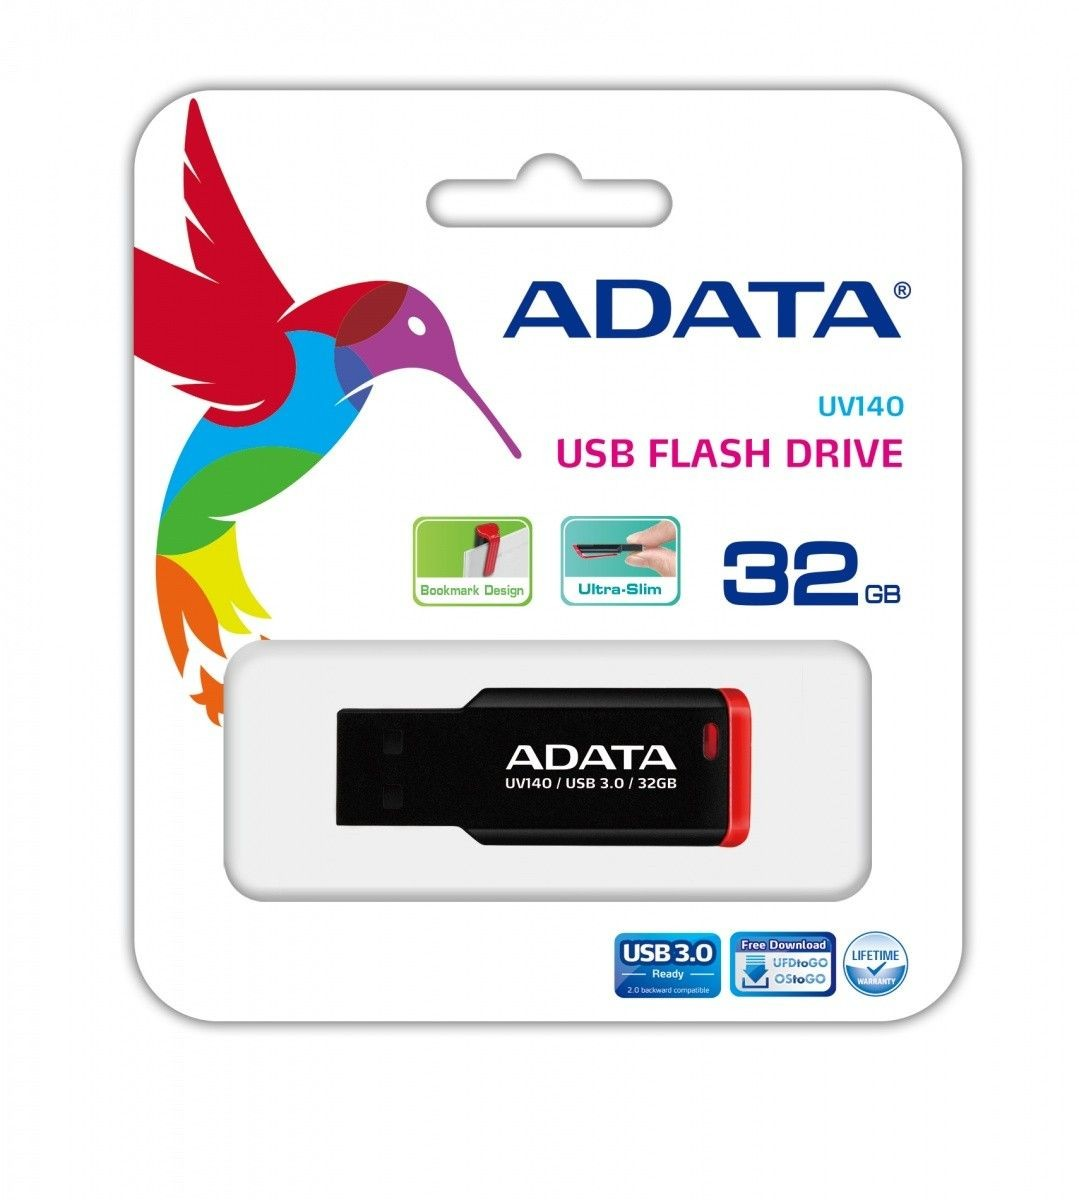 A-Data Adata Flash Drive UV140, 32GB, USB 2.0, black and red